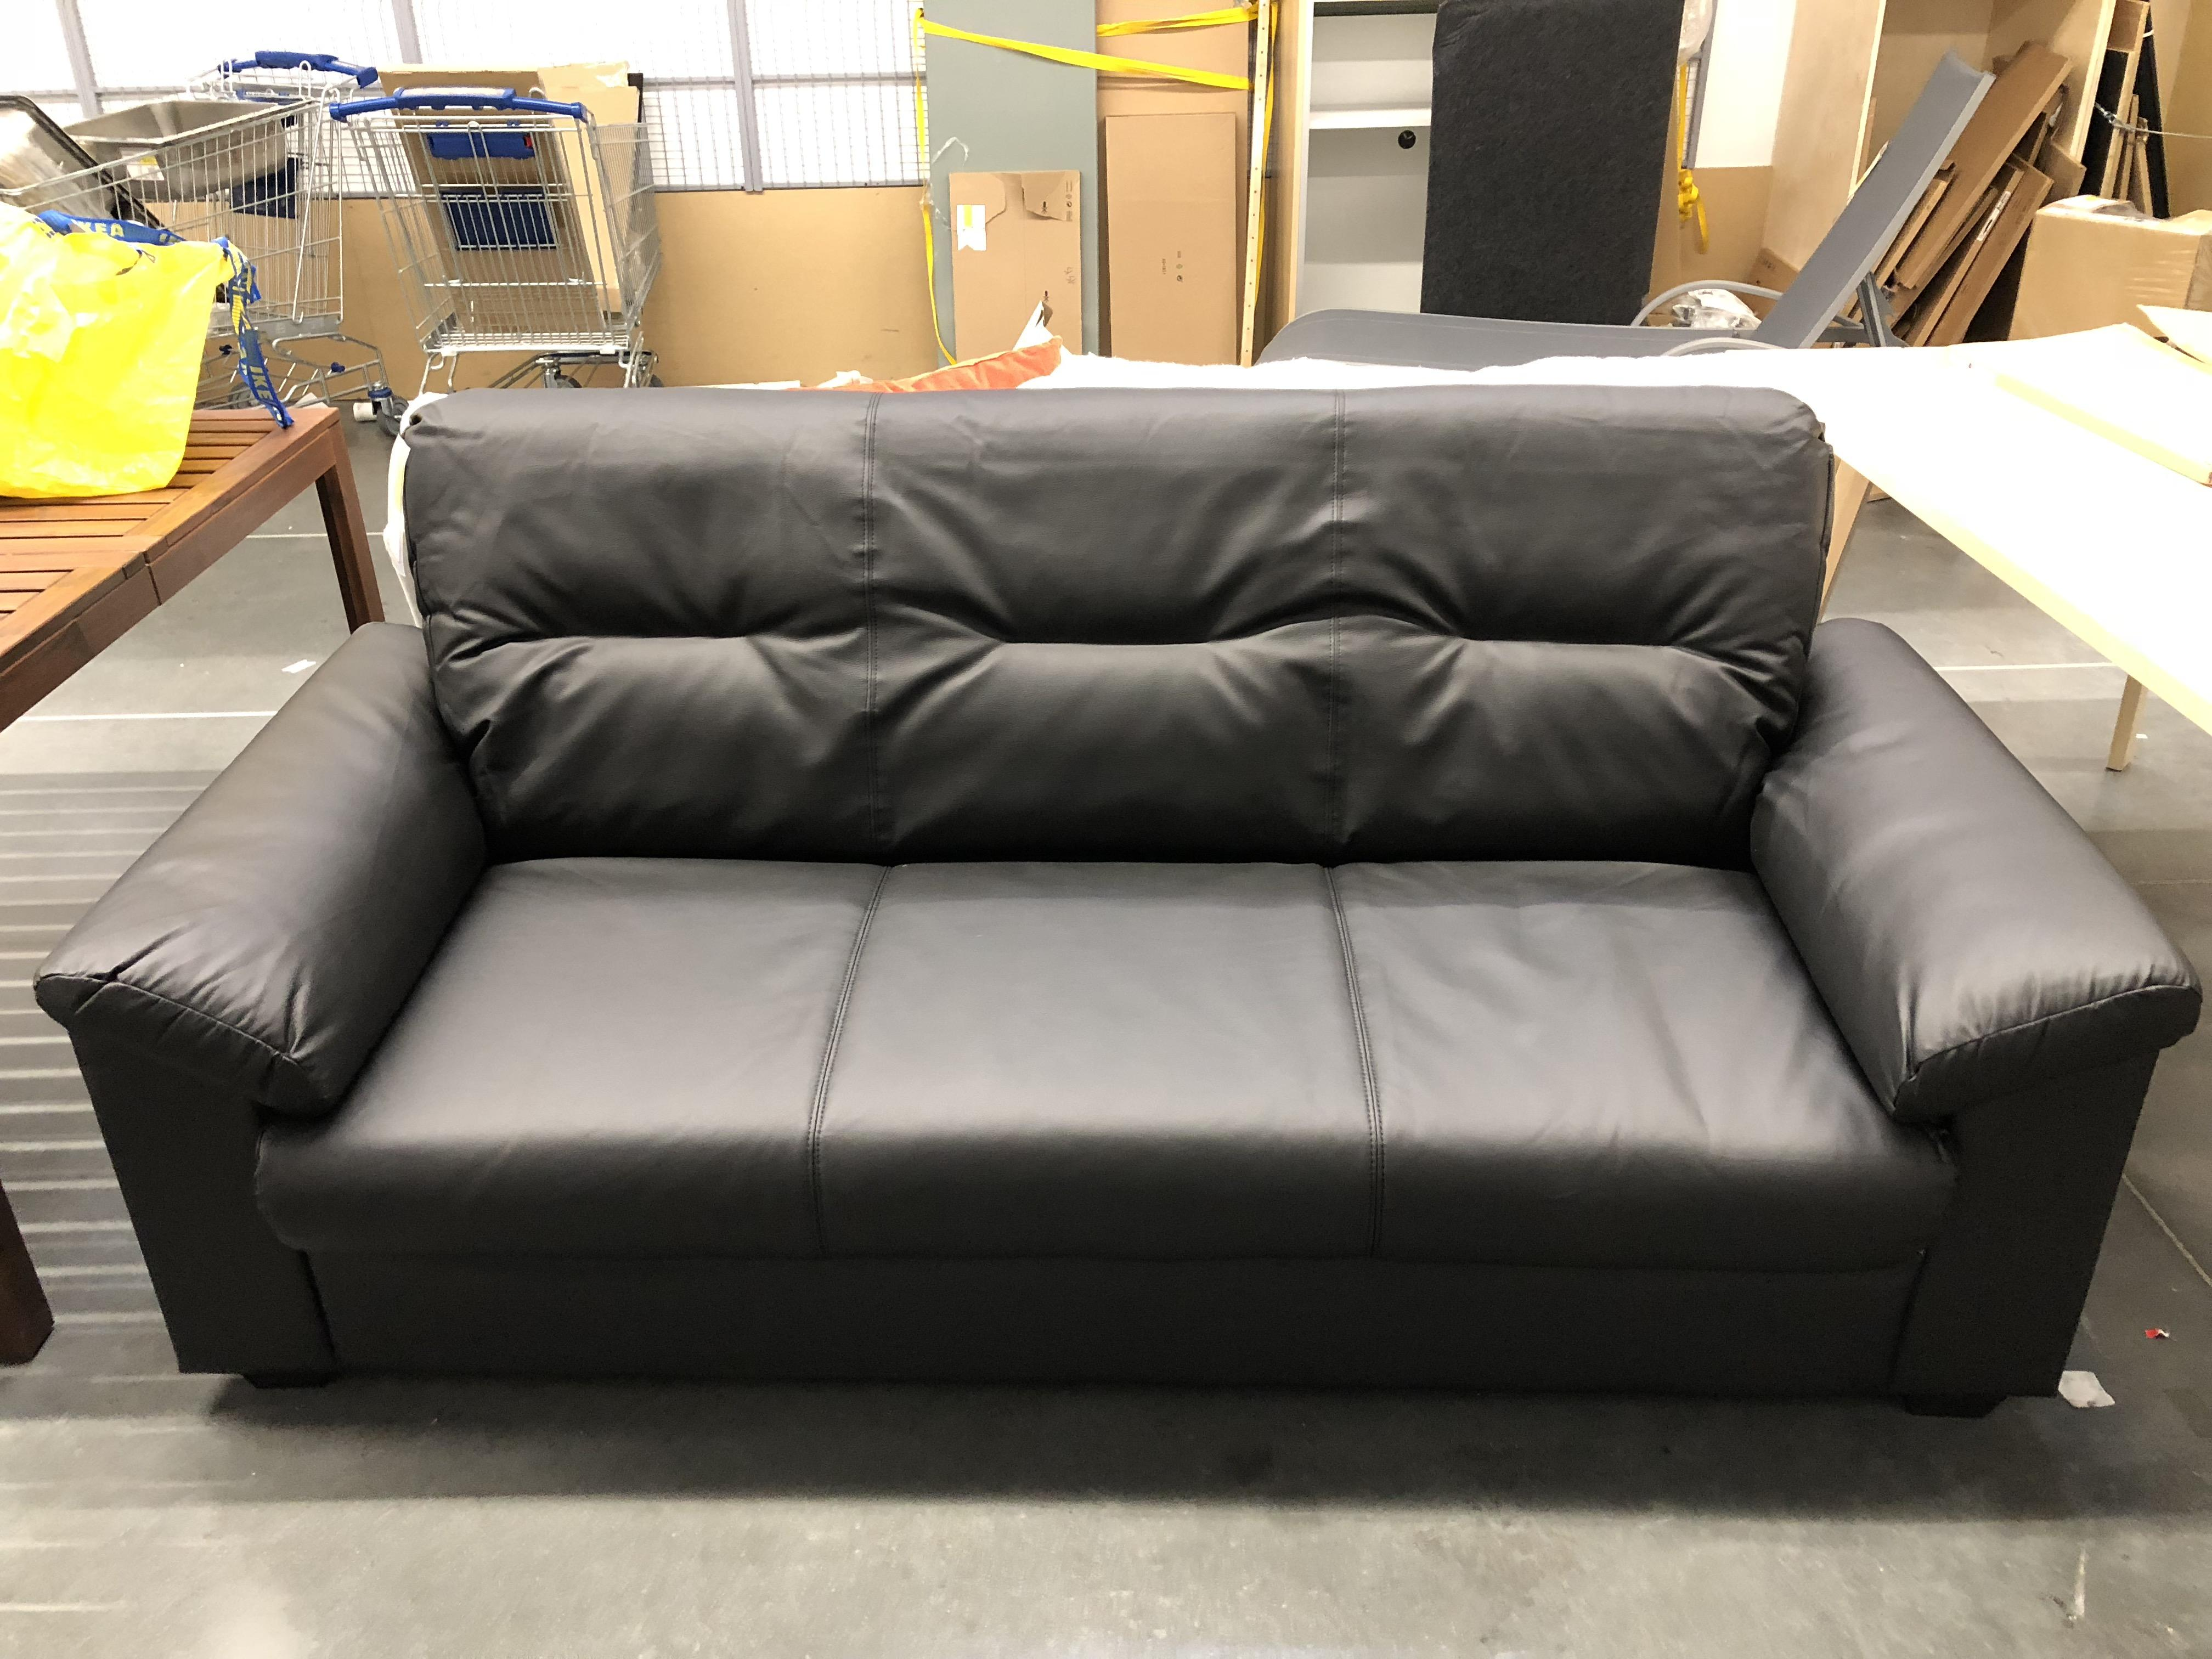 Couches In Ikea Ladies And Gentlemen The Ikea Casting Couch Funny